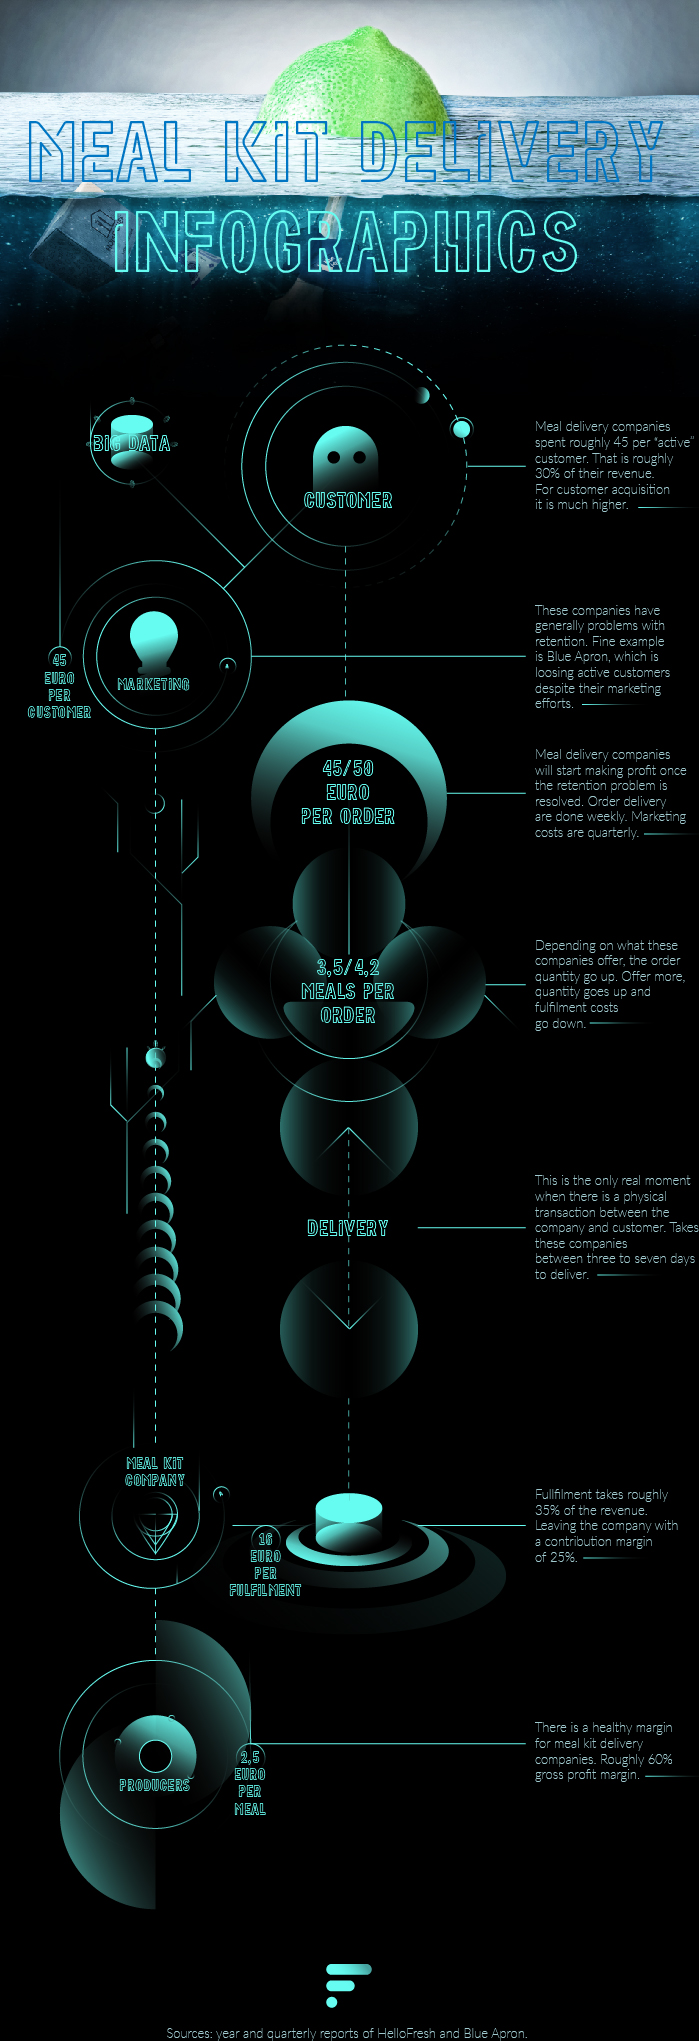 Abstract infographic - Customer centric